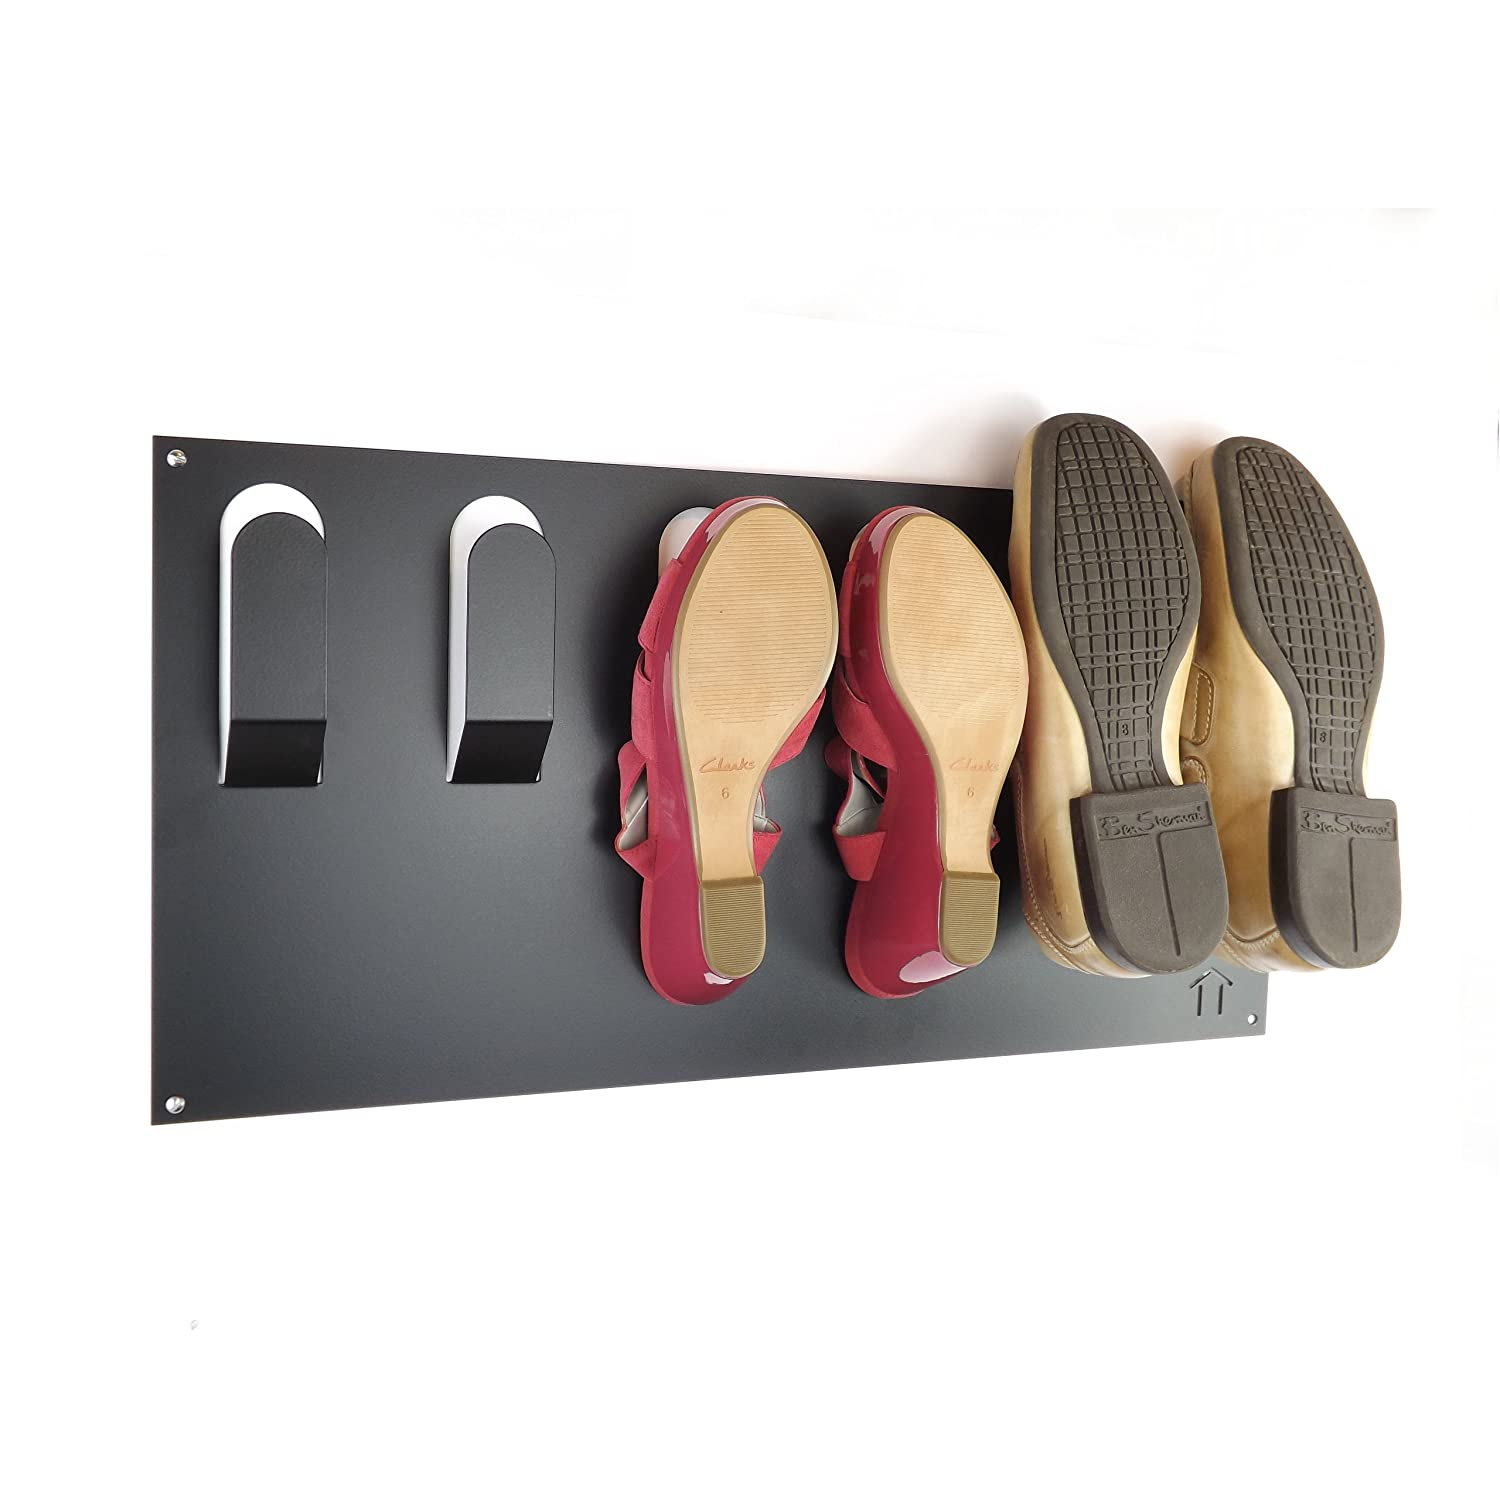 Stylish Wall Mounted Shoe Storage Rack by The Metal House Black